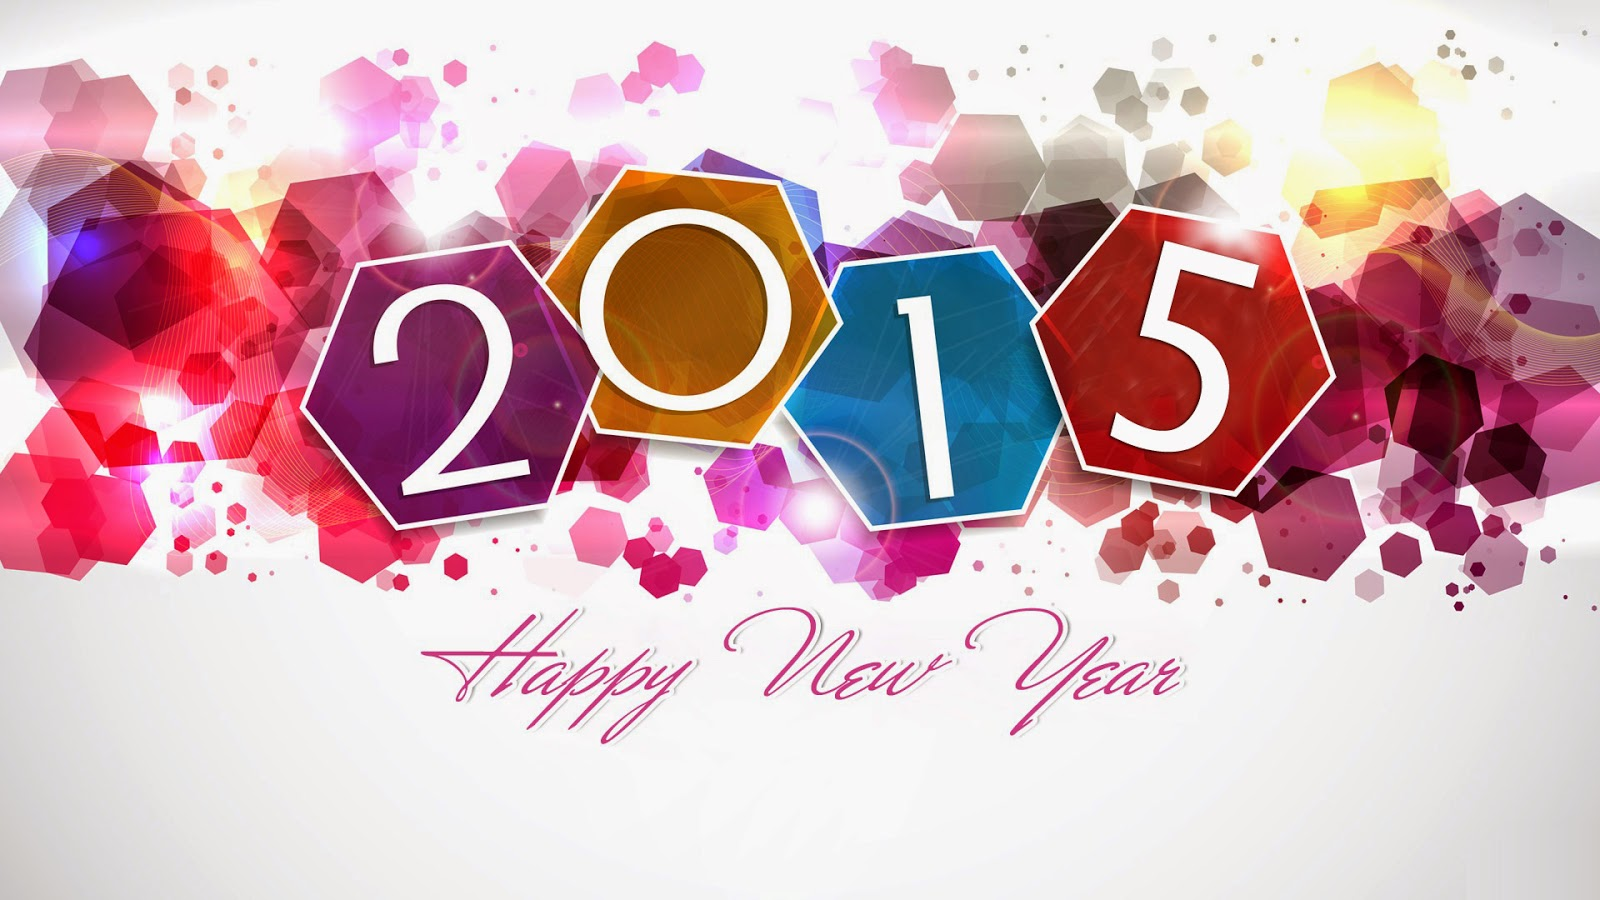 ... messages in punjabi happy new year 2015 messages in punjabi sms quotes